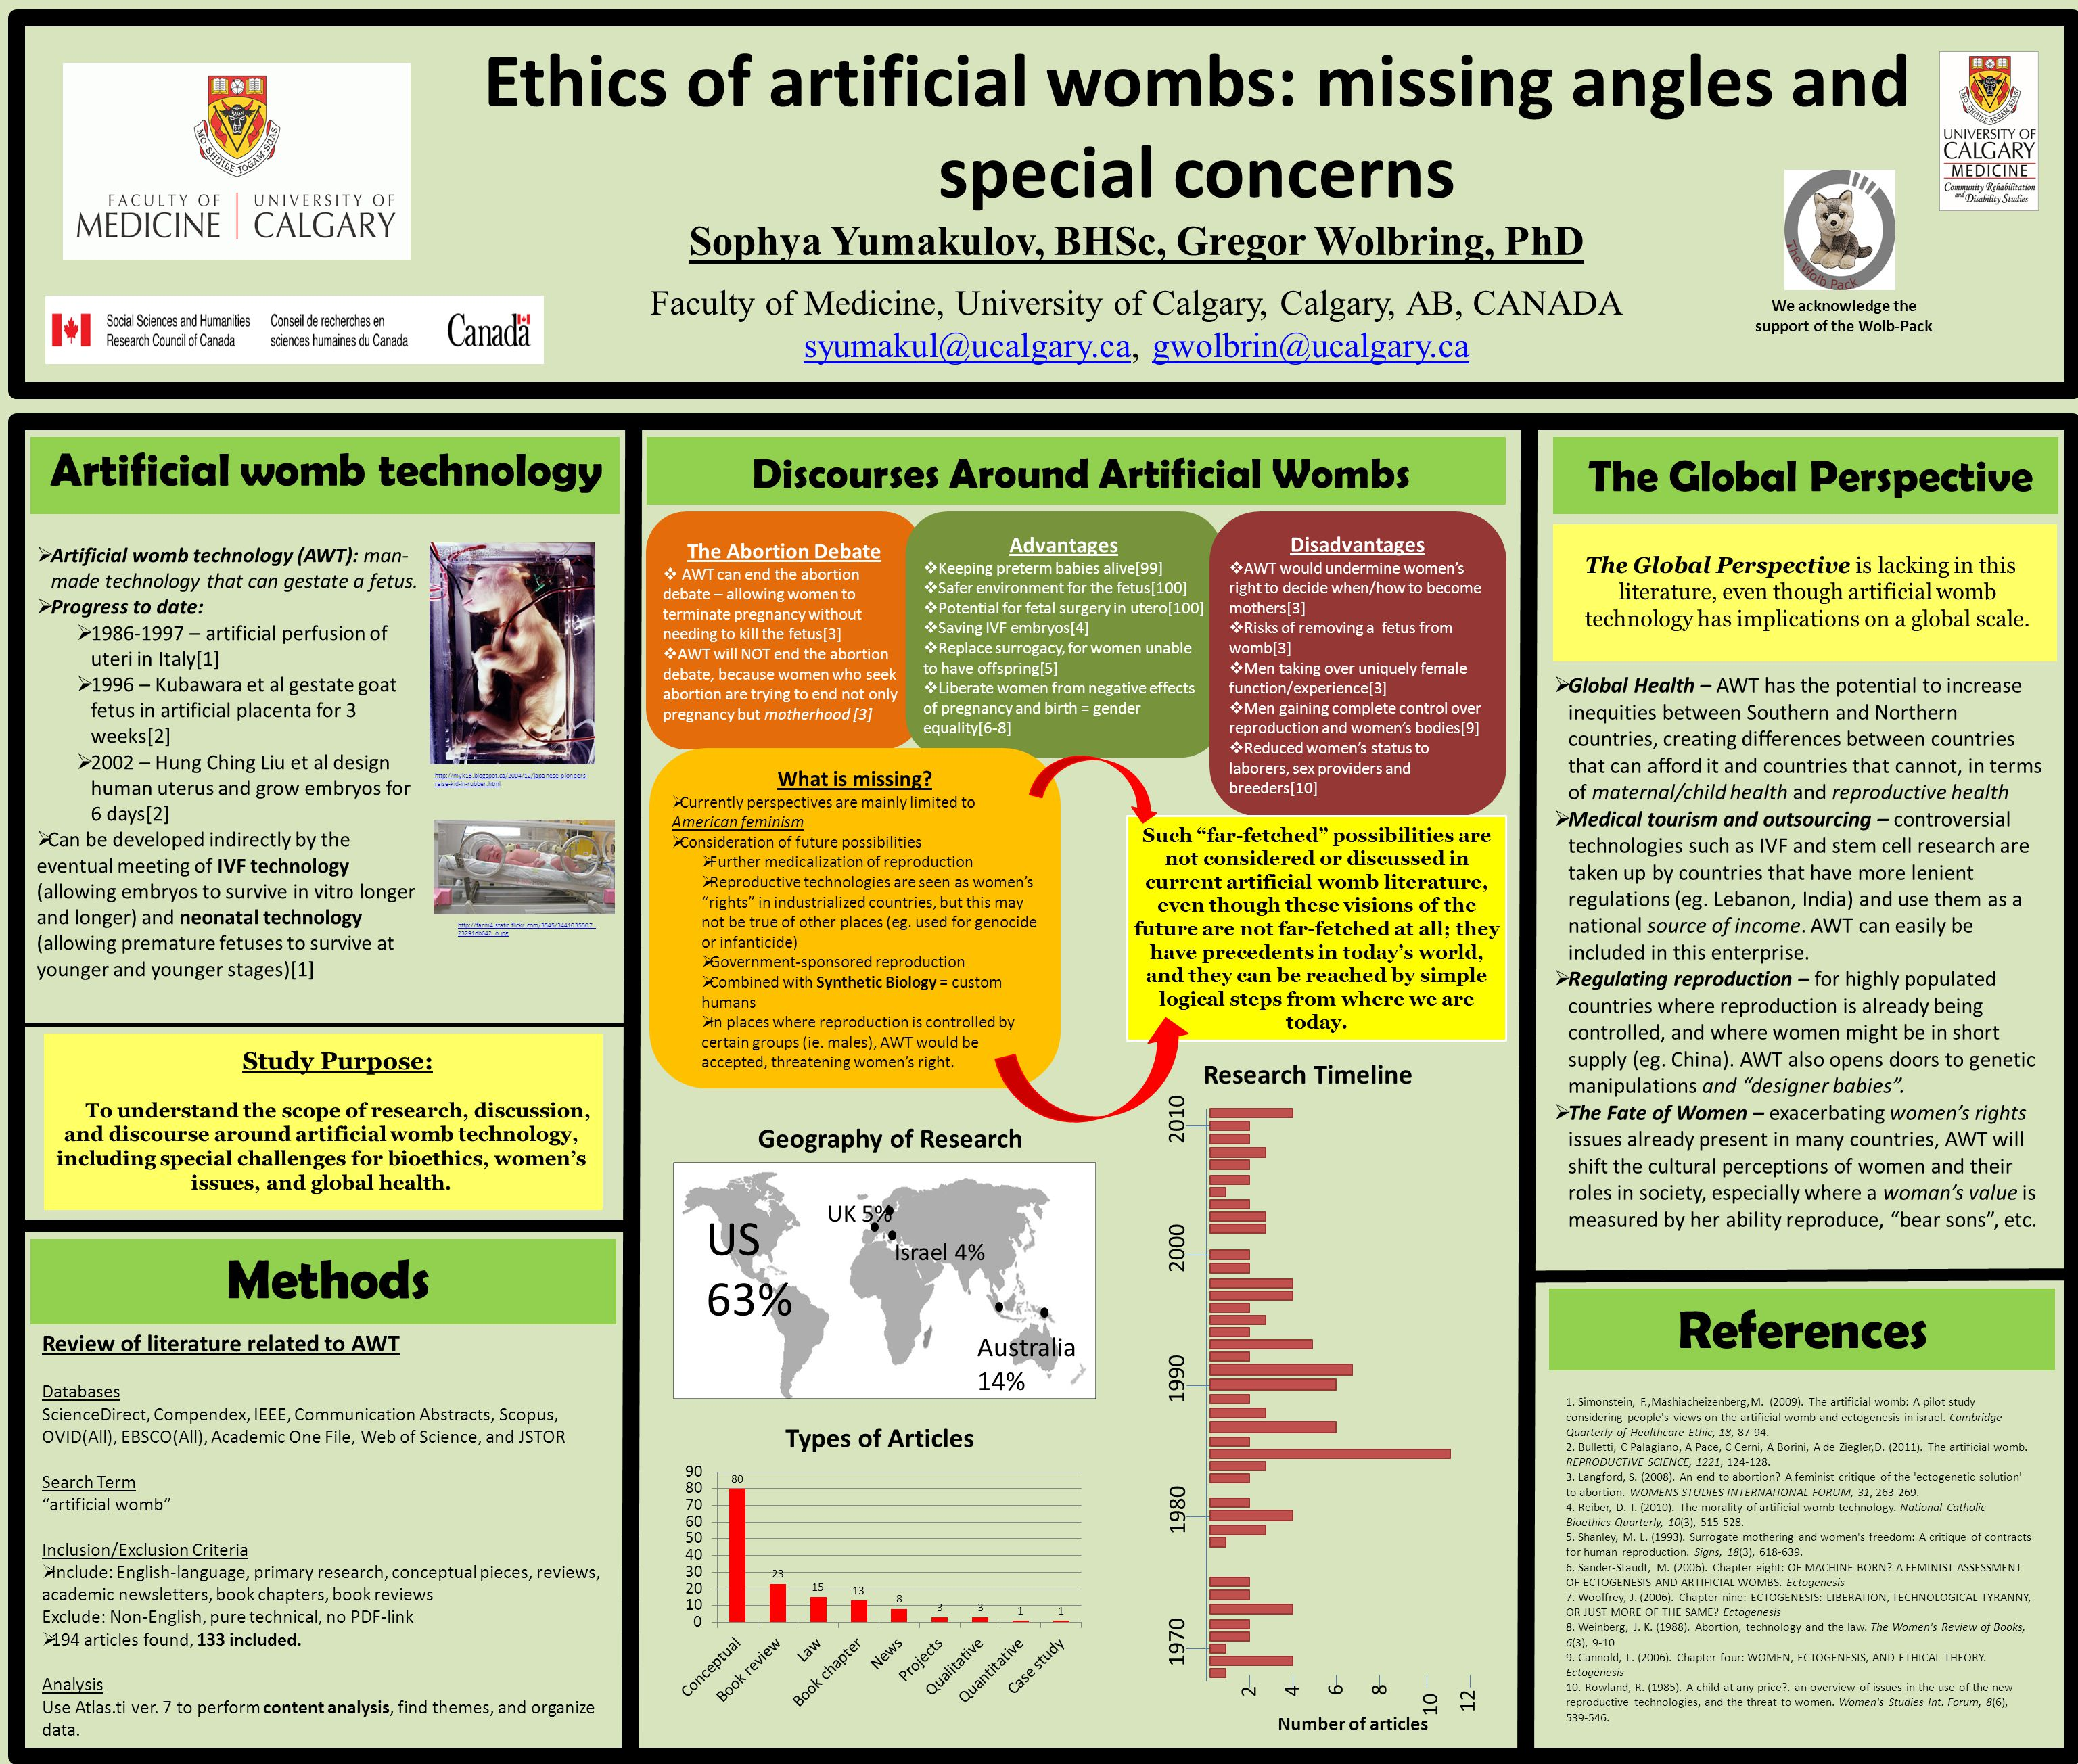 Ethics of artificial wombs: missing angles and special concerns Faculty of Medicine, University of Calgary, Calgary, AB, CANADA syumakul@ucalgary.casyumakul@ucalgary.ca, gwolbrin@ucalgary.cagwolbrin@ucalgary.ca Sophya Yumakulov, BHSc, Gregor Wolbring, PhD Discourses Around Artificial Wombs The Global Perspective Artificial womb technology  Artificial womb technology (AWT): man- made technology that can gestate a fetus.